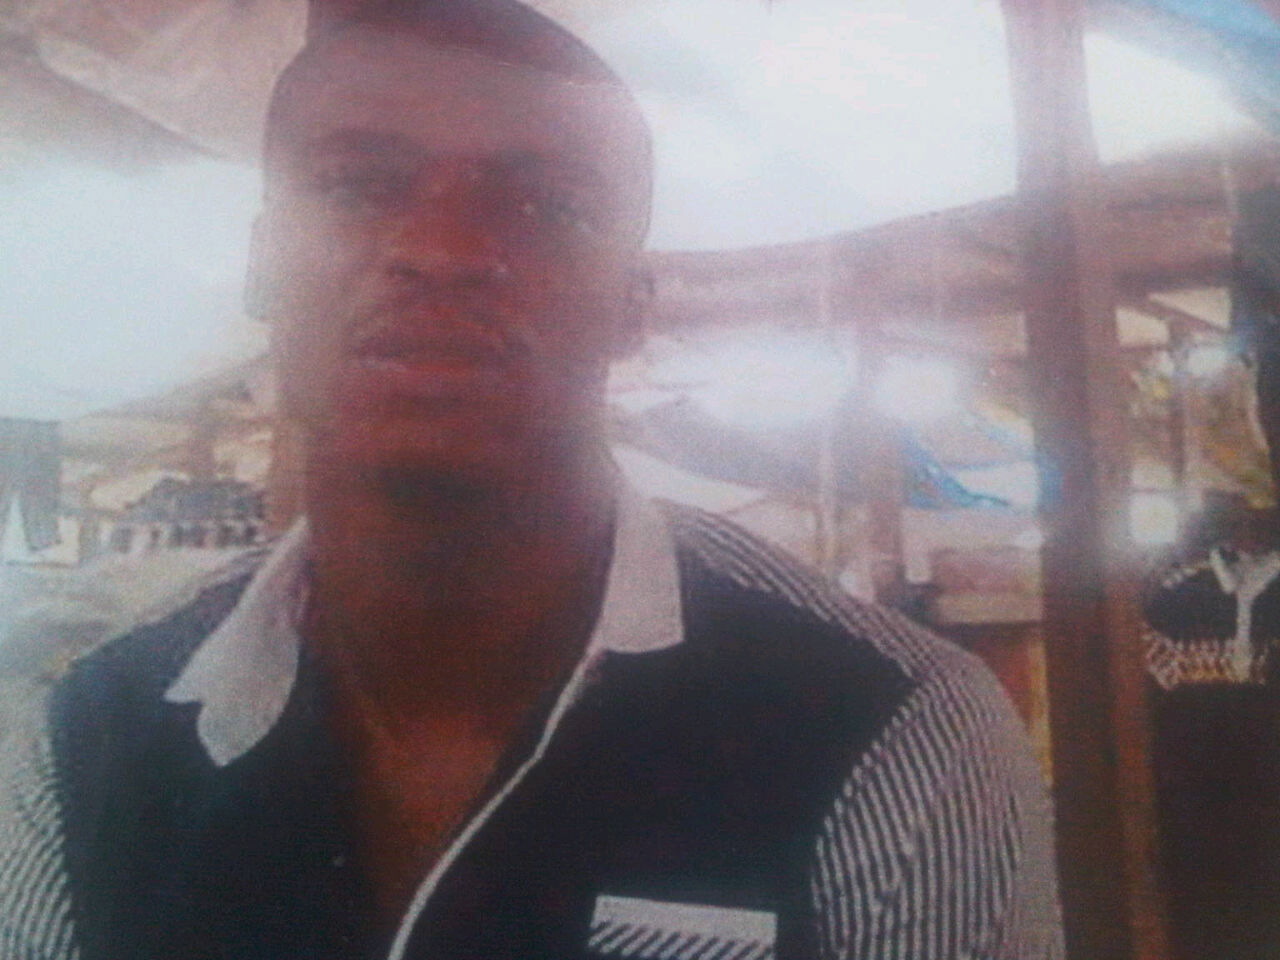 Loverboy Arrested, Jumped Bail After Promising Five Women Marriage (photo)